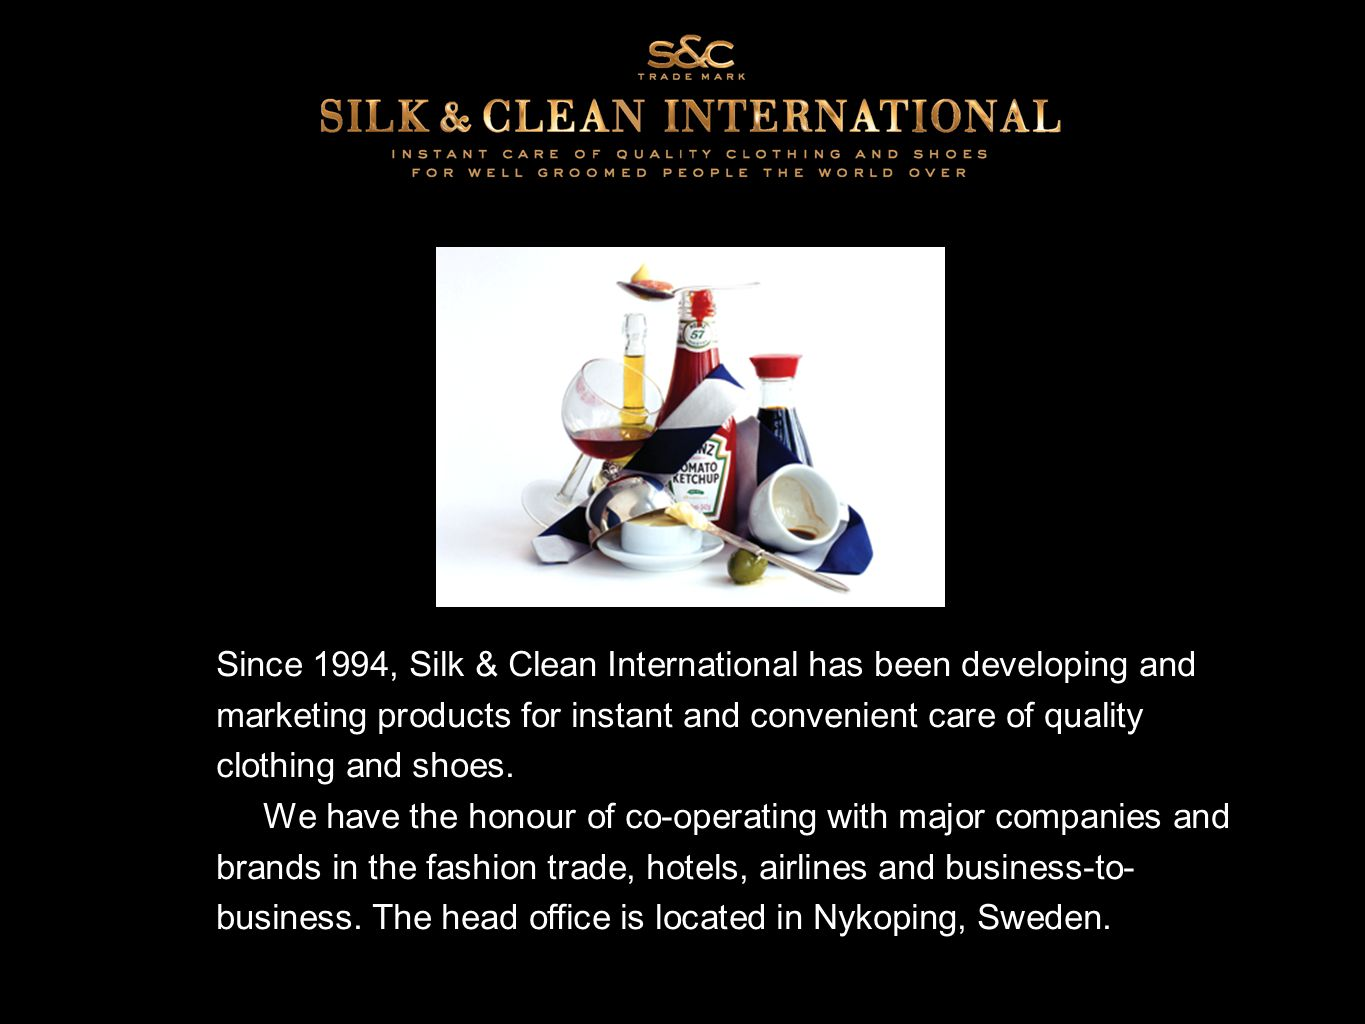 Since 1994, Silk & Clean International has been developing and marketing products for instant and convenient care of quality clothing and shoes.